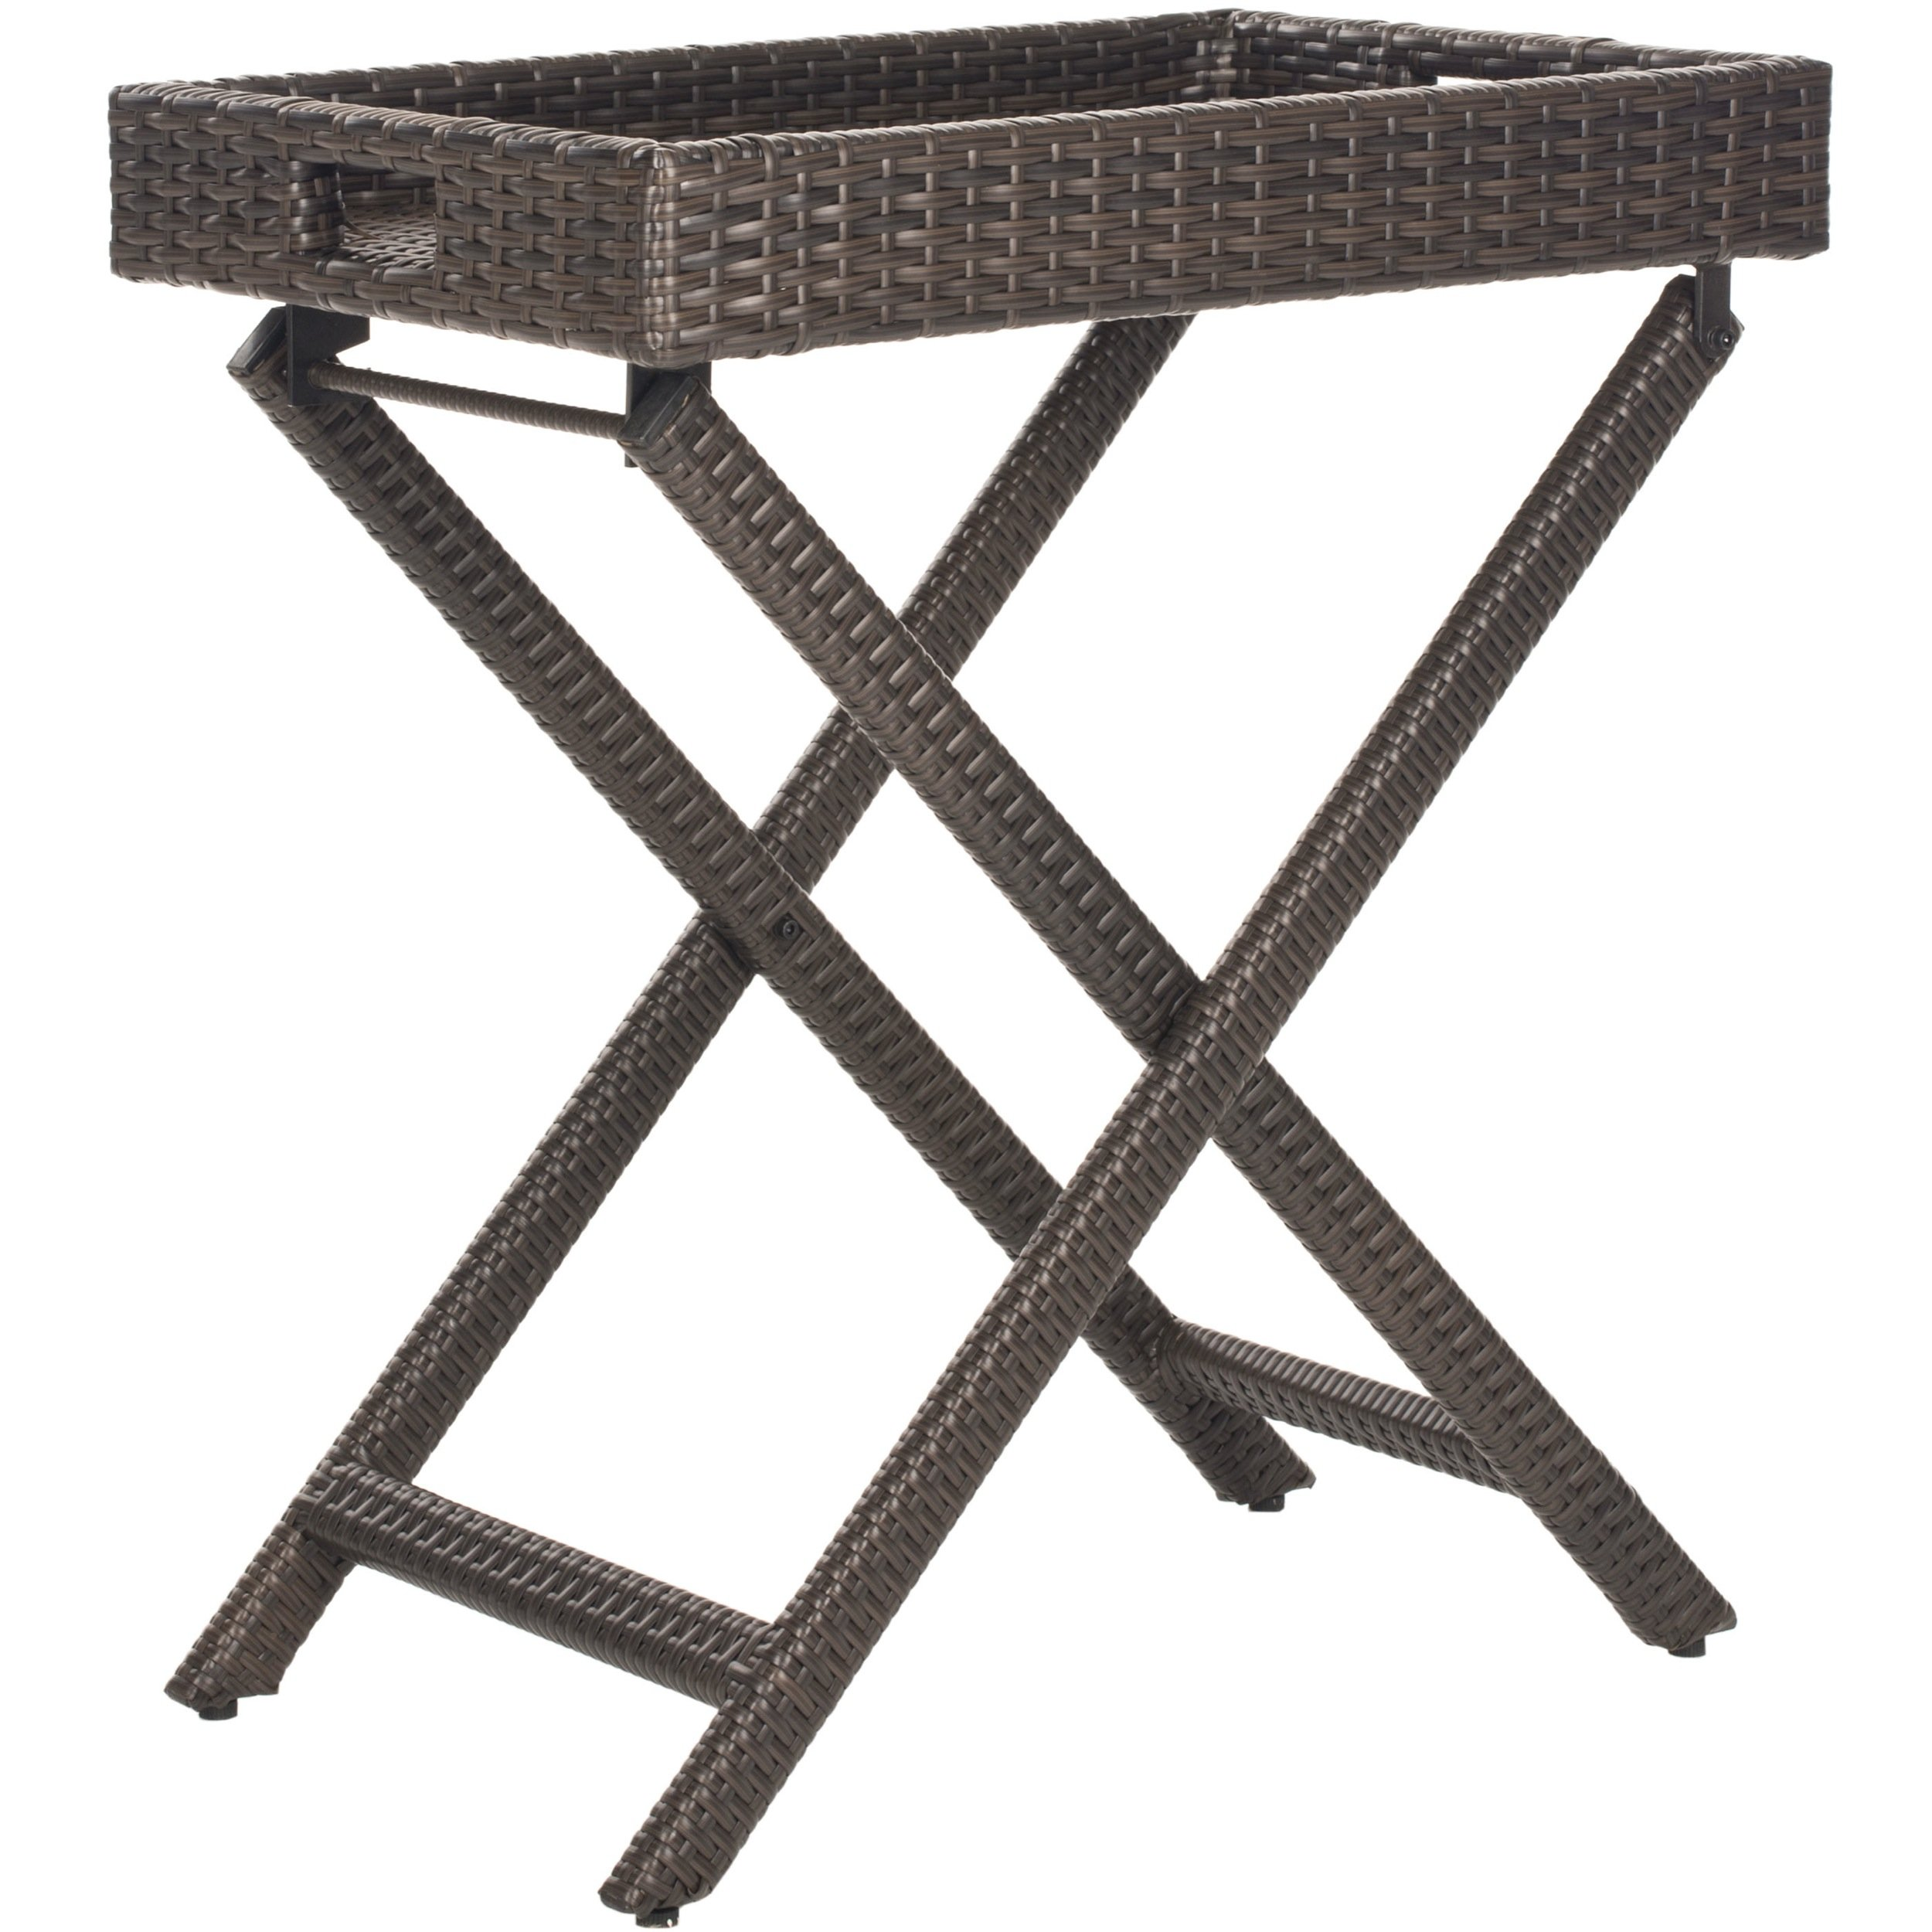 safavieh outdoor living brown wicker folding tray side table foldable accent free shipping today small concrete bistro height trestle top cast metal nate berkus low doll furniture